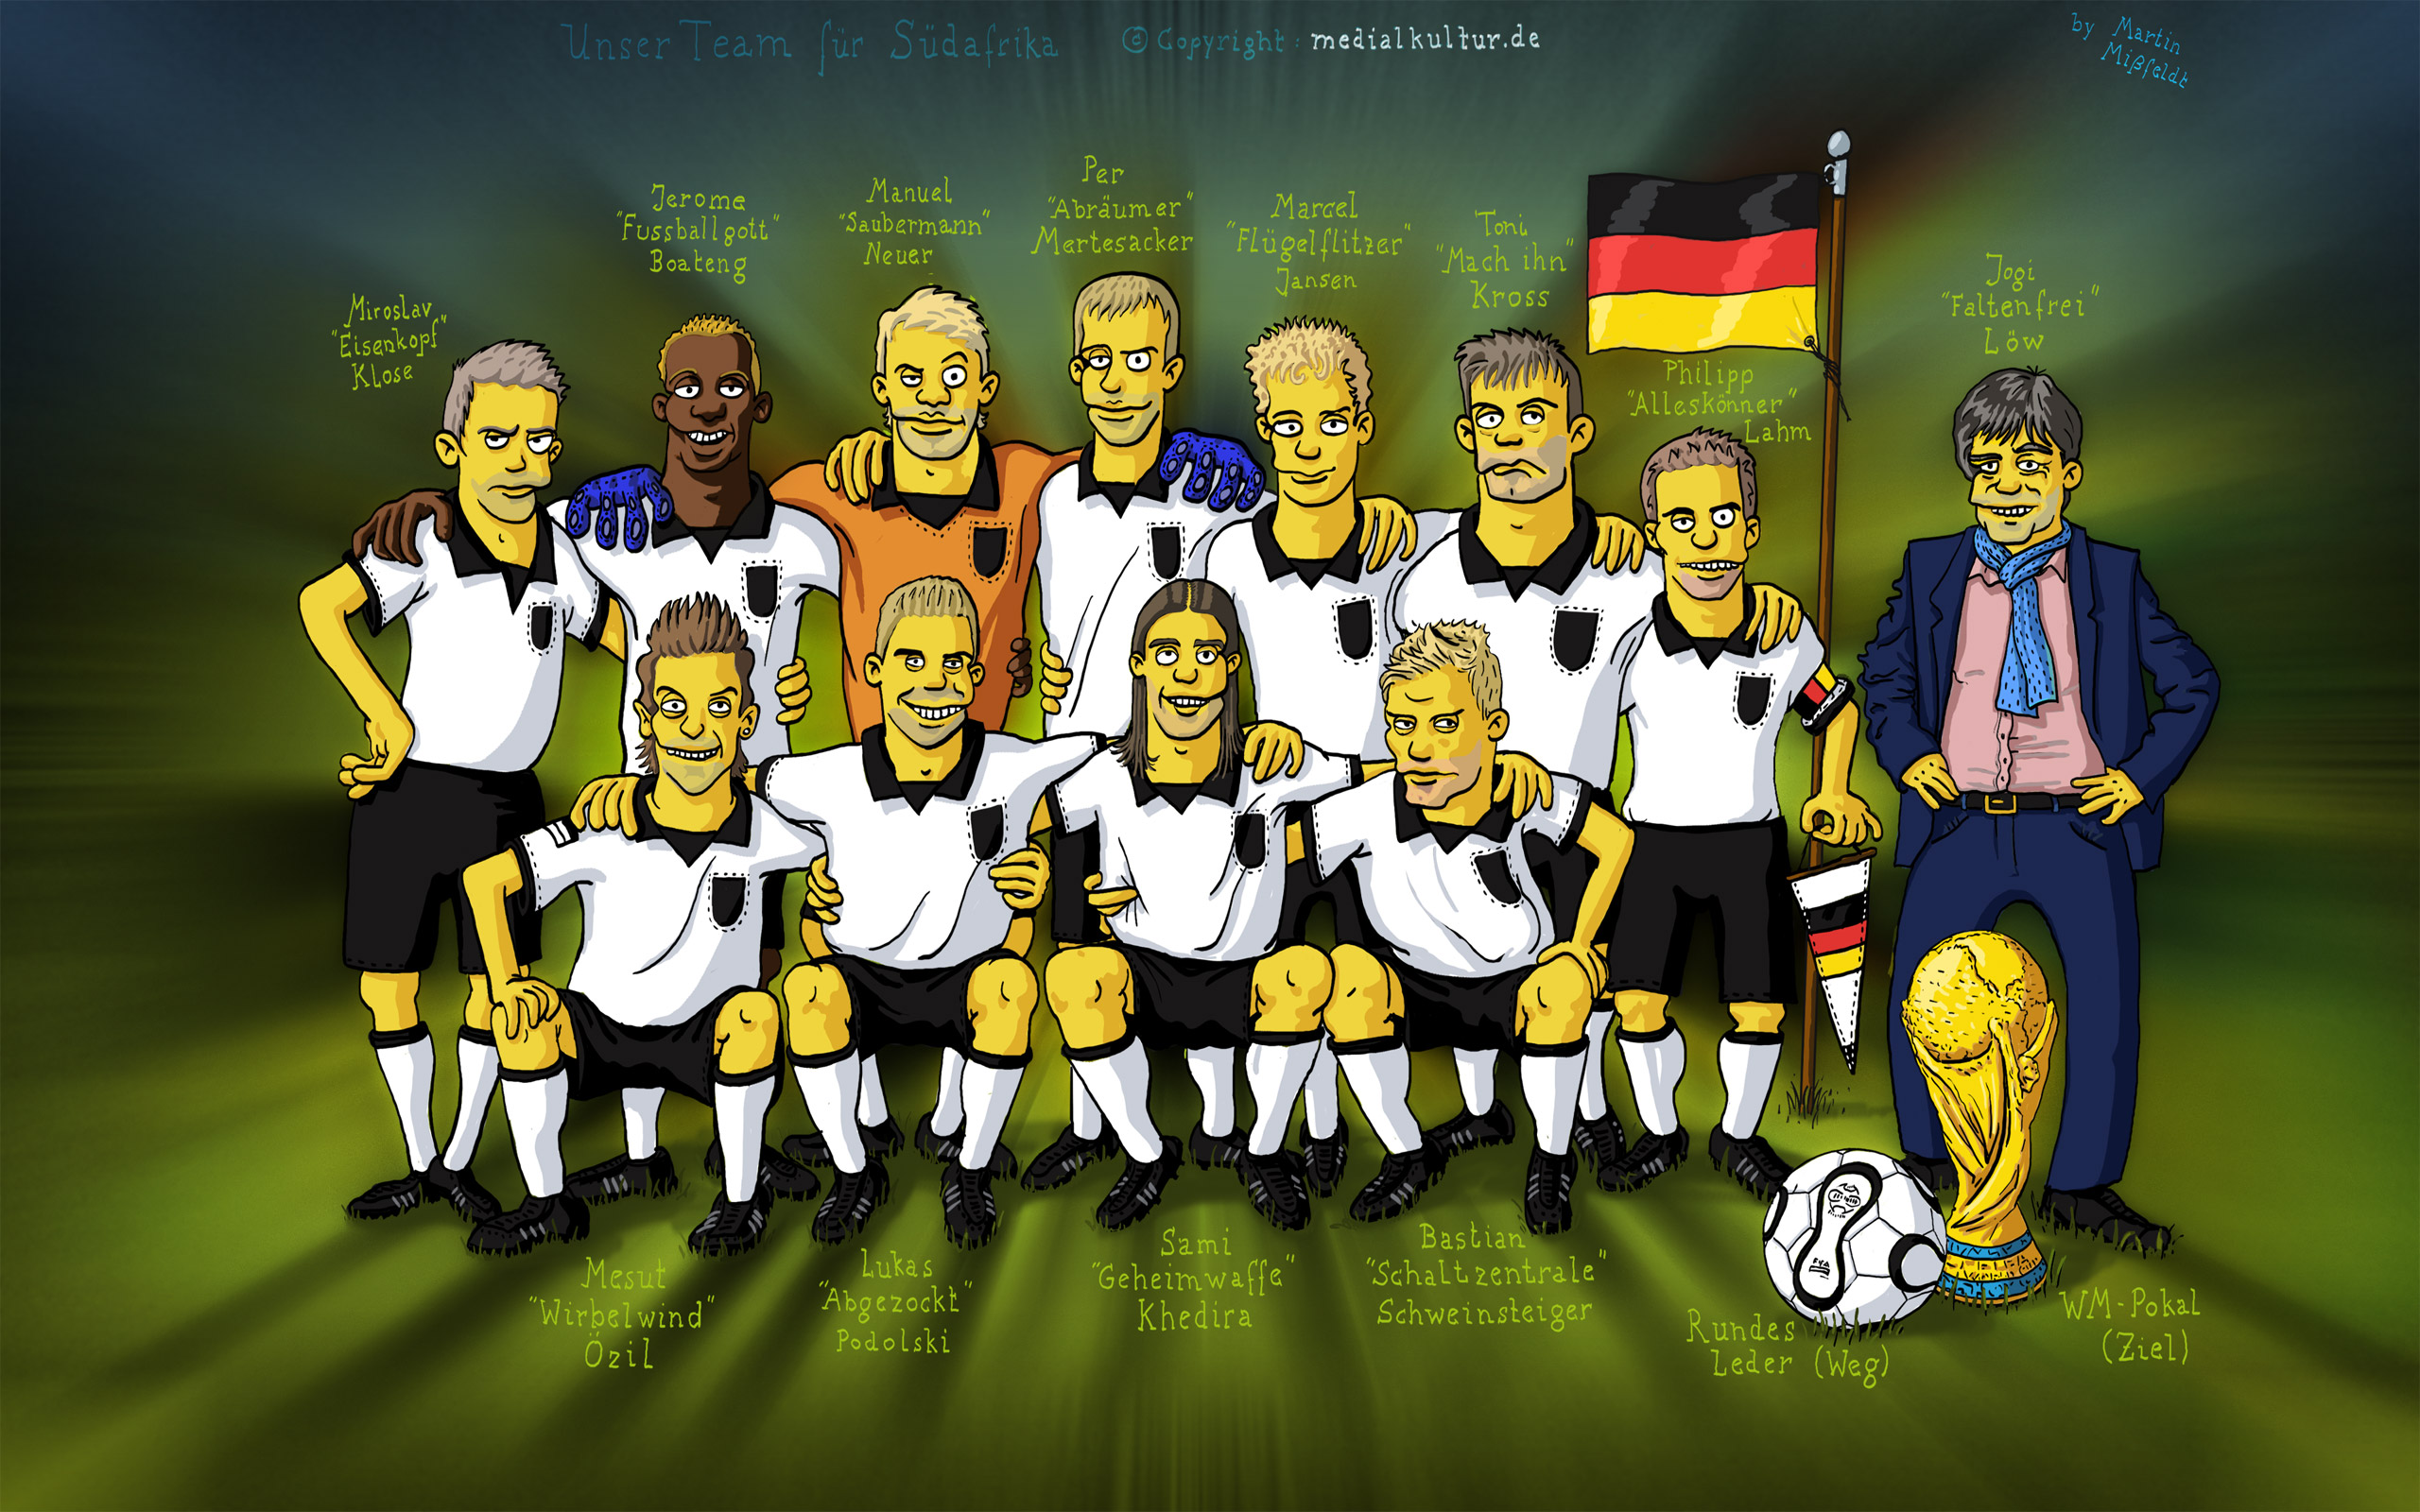 Wallpaper Karikatur Simpson Timnas Jerman World Cup 2010 Mein Symbian